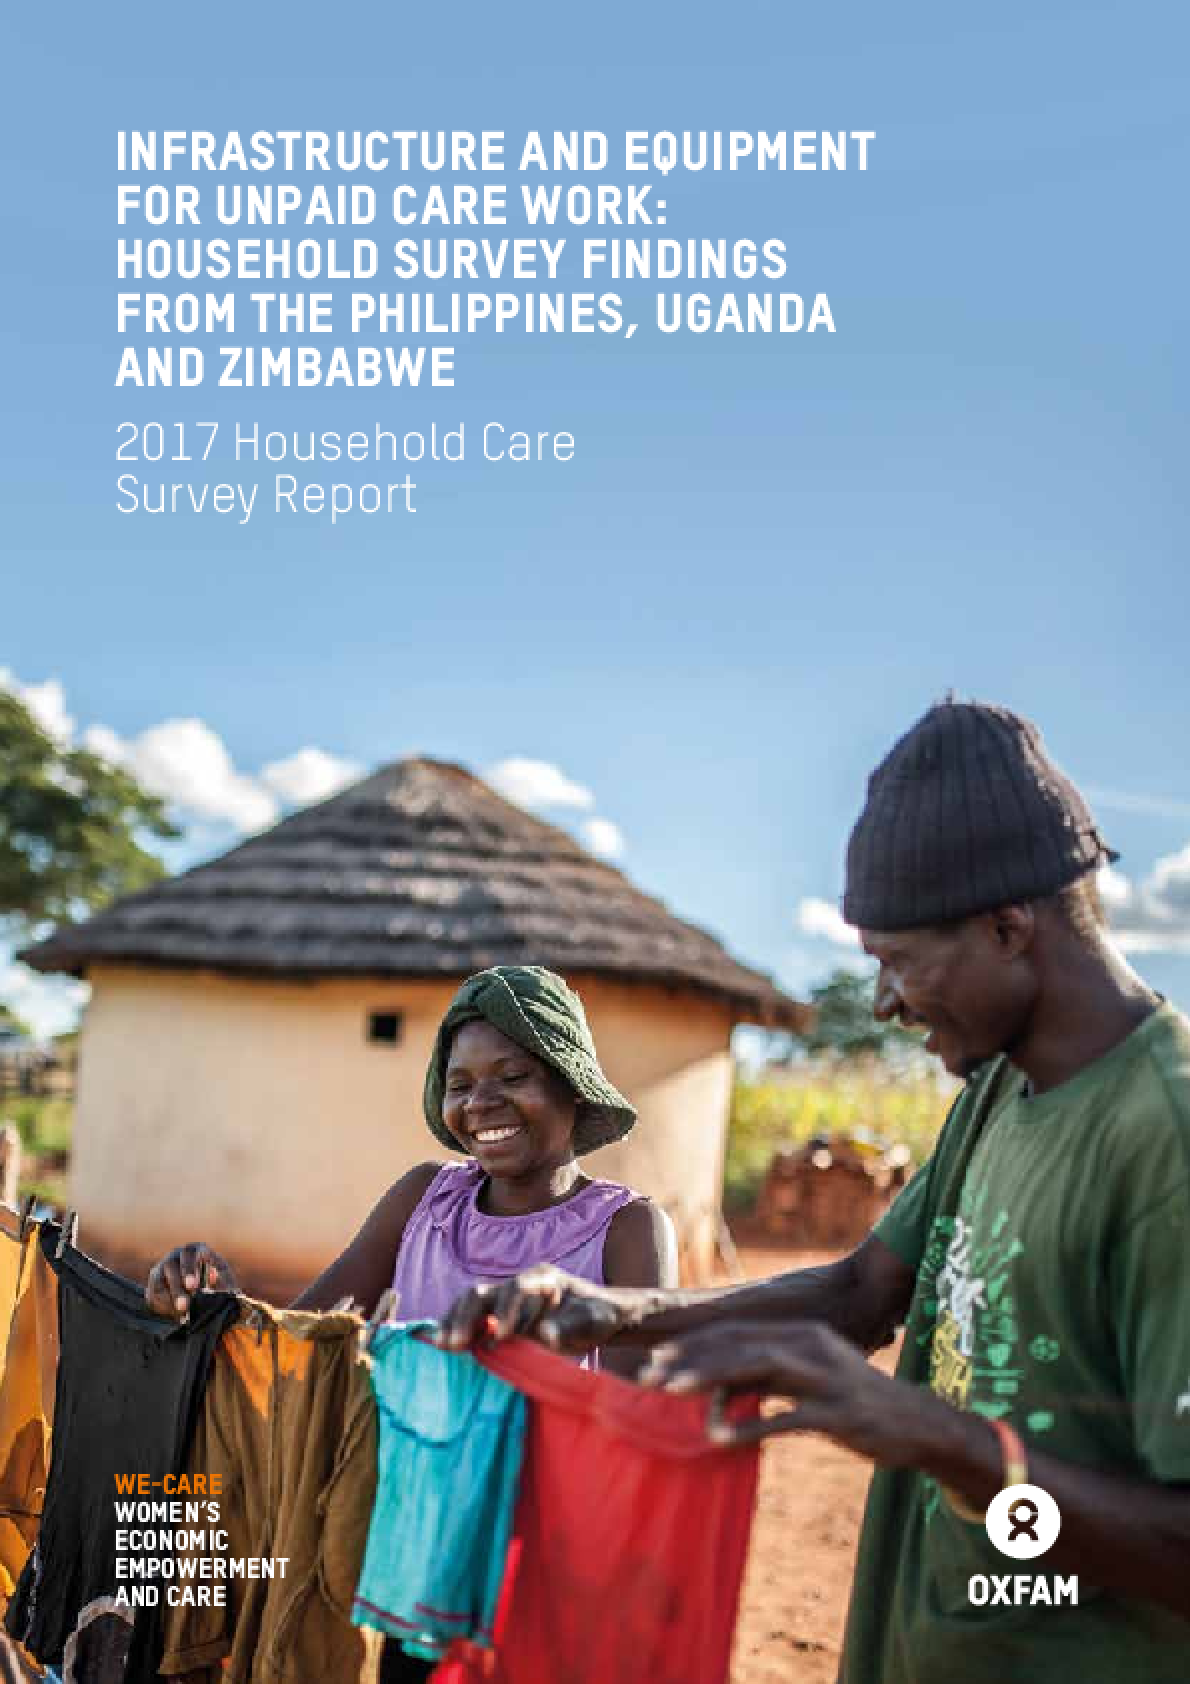 Infrastructure and Equipment for Unpaid Care Work: Household survey findings from the Philippines, Uganda and Zimbabwe - 2017 Household Care Survey report